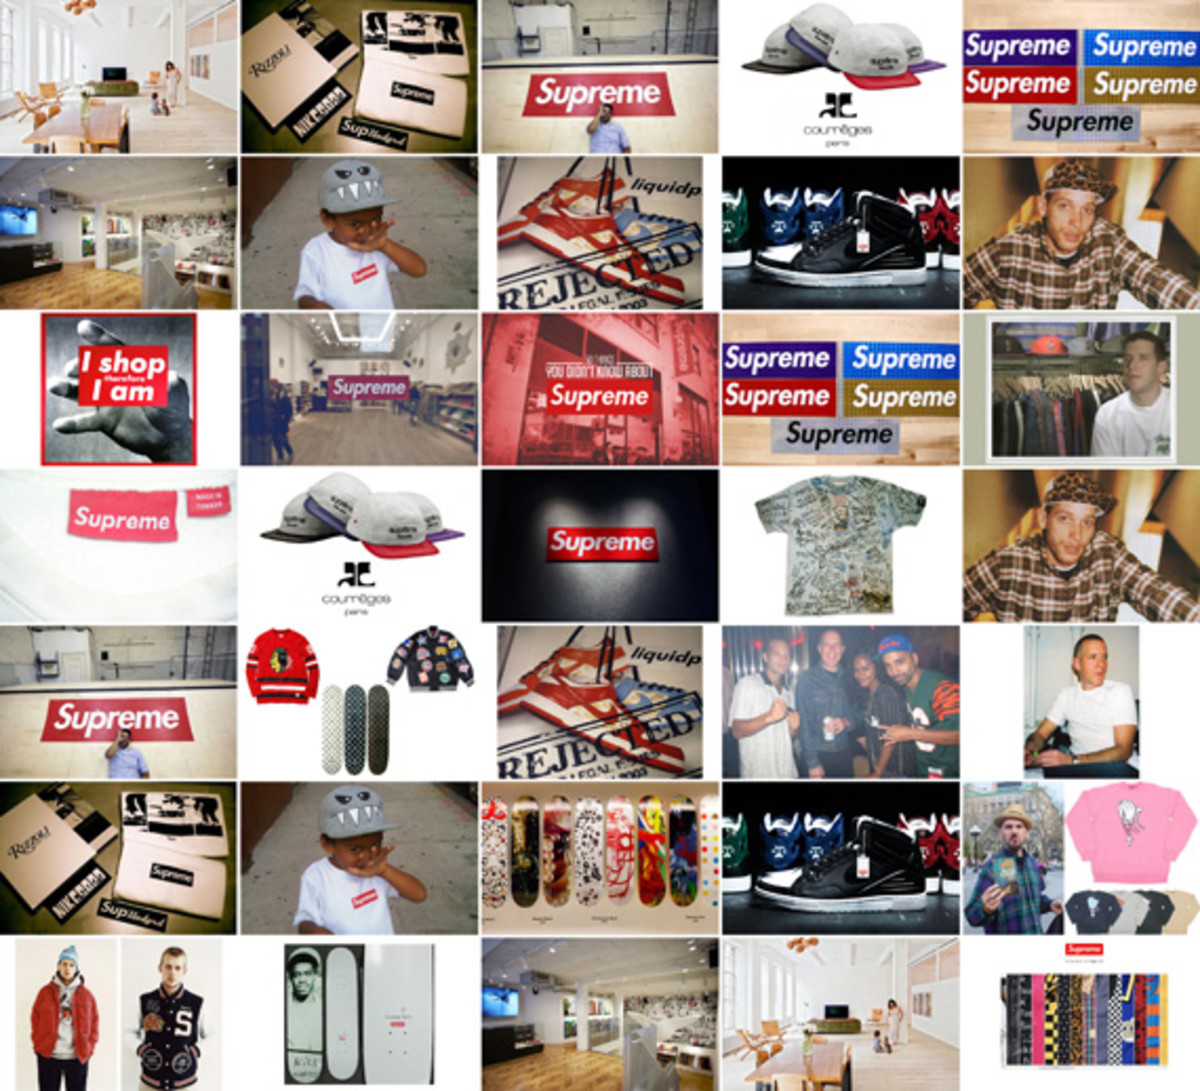 26cfc3ab50db3 50 Things You Didn t Know About Supreme - Freshness Mag